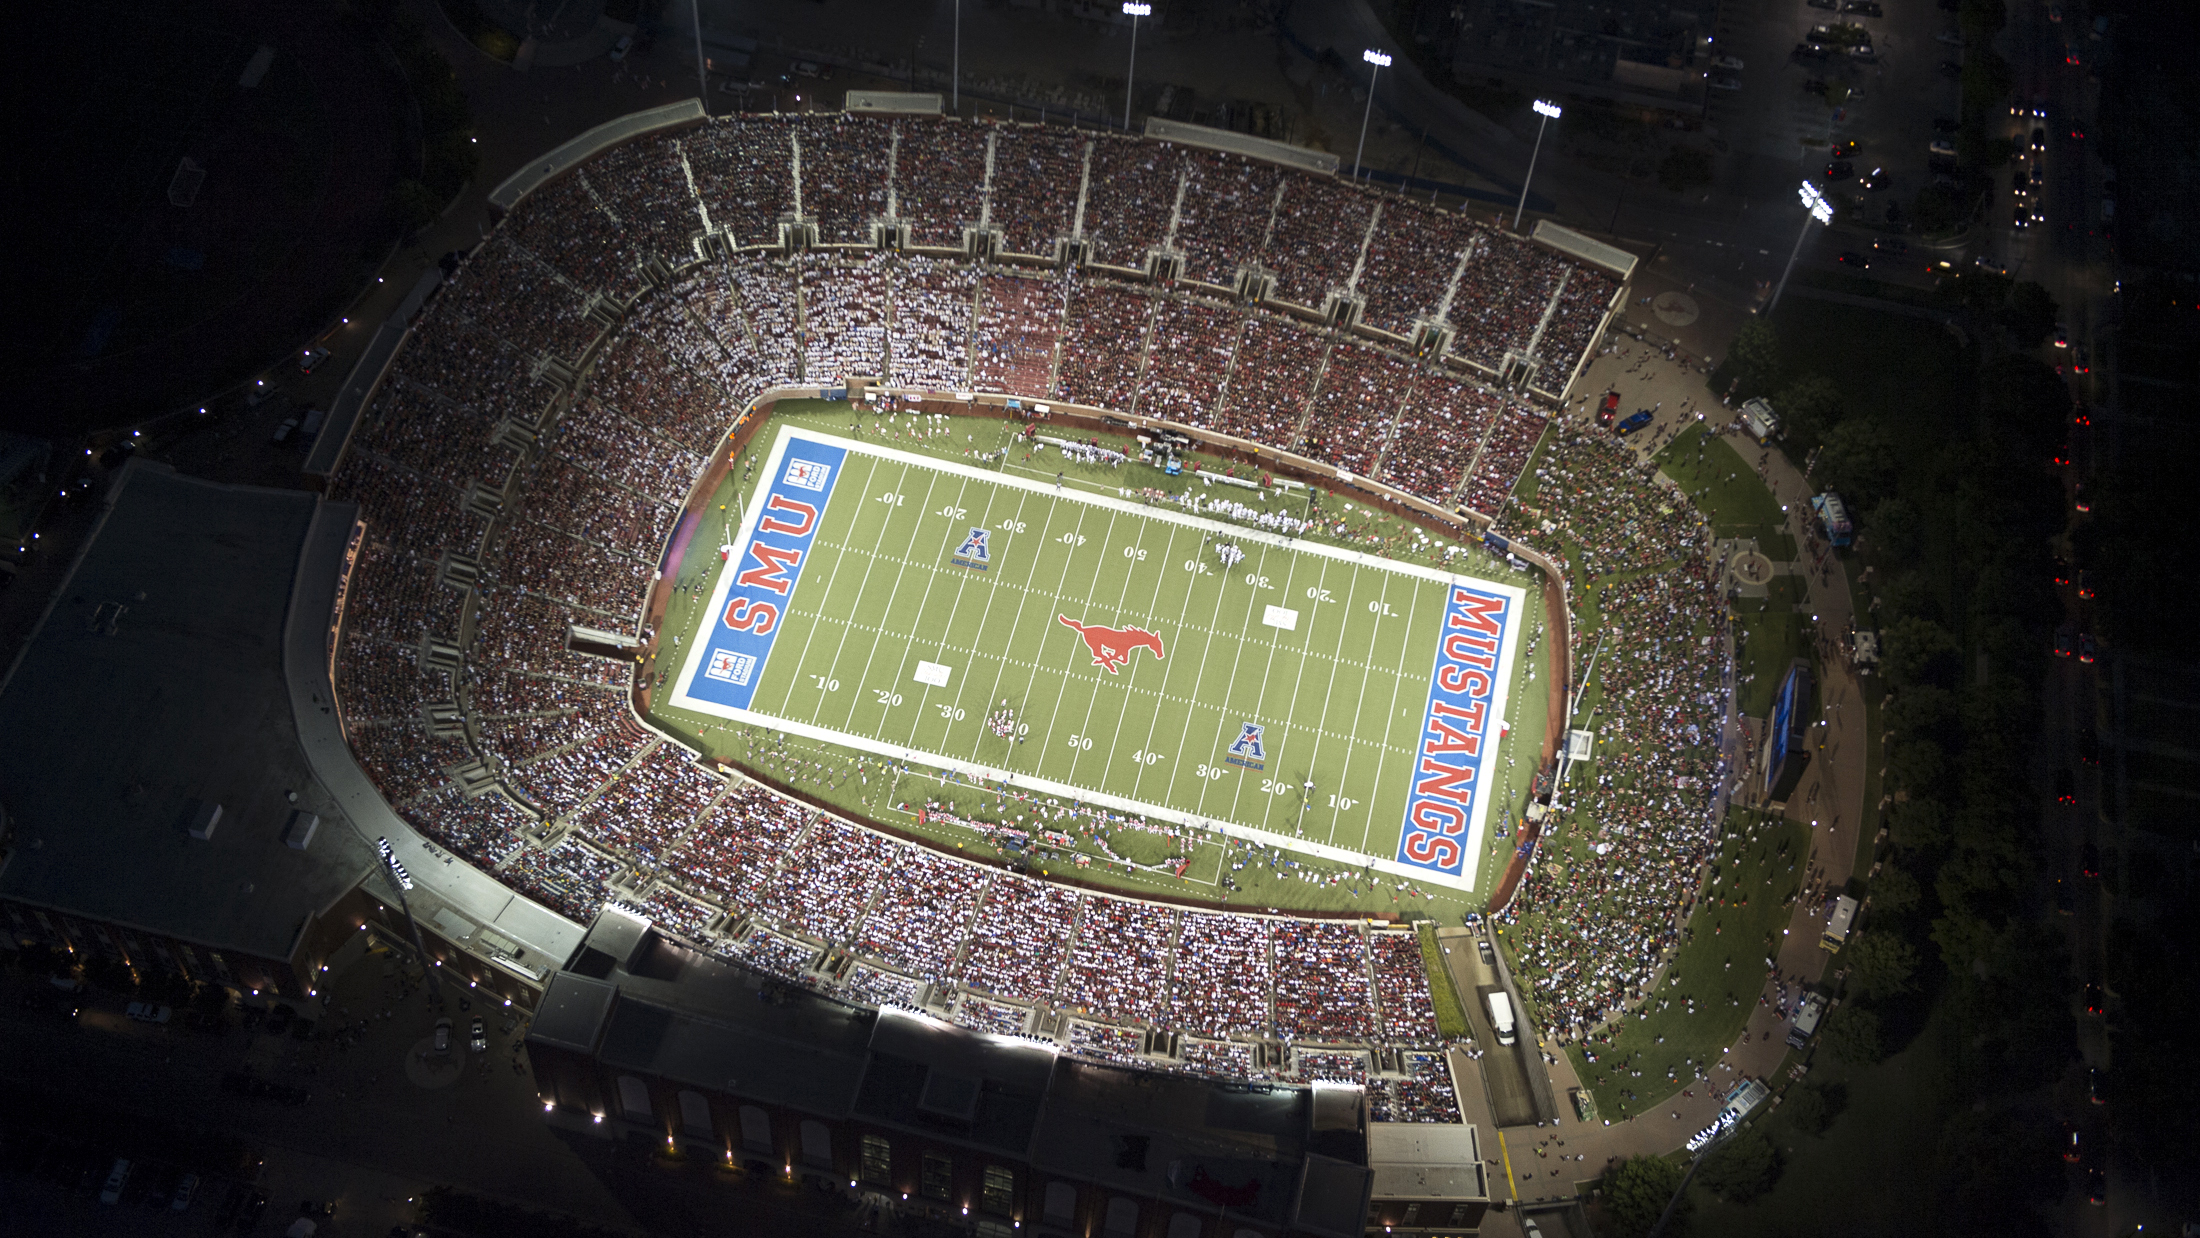 Ford Stadium at night